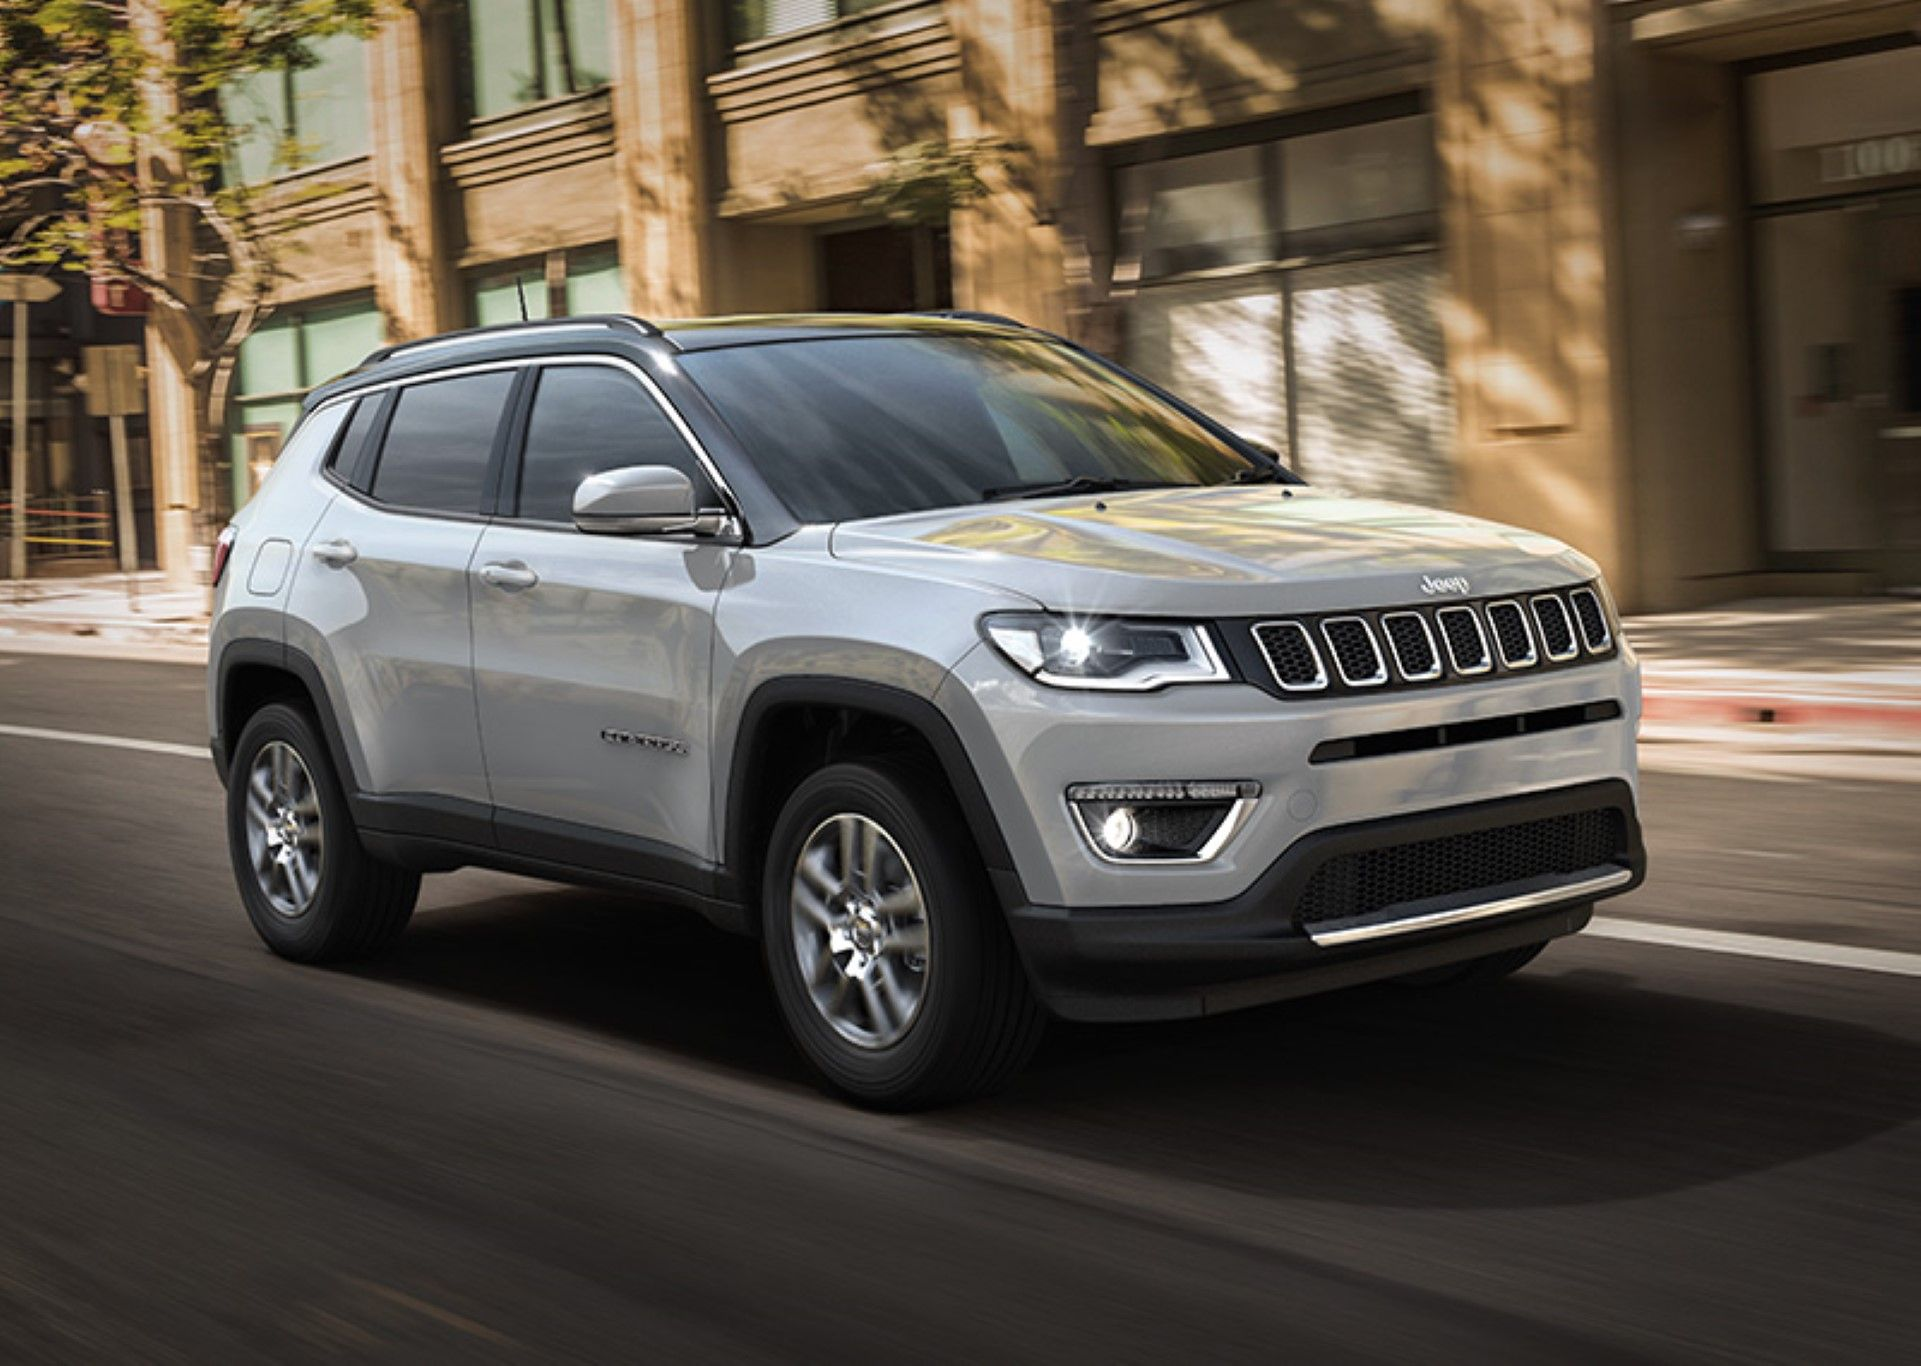 Sub 4 Metre Jeep Compact Suv Under Development For India Jeep Compass Compact Suv Suv